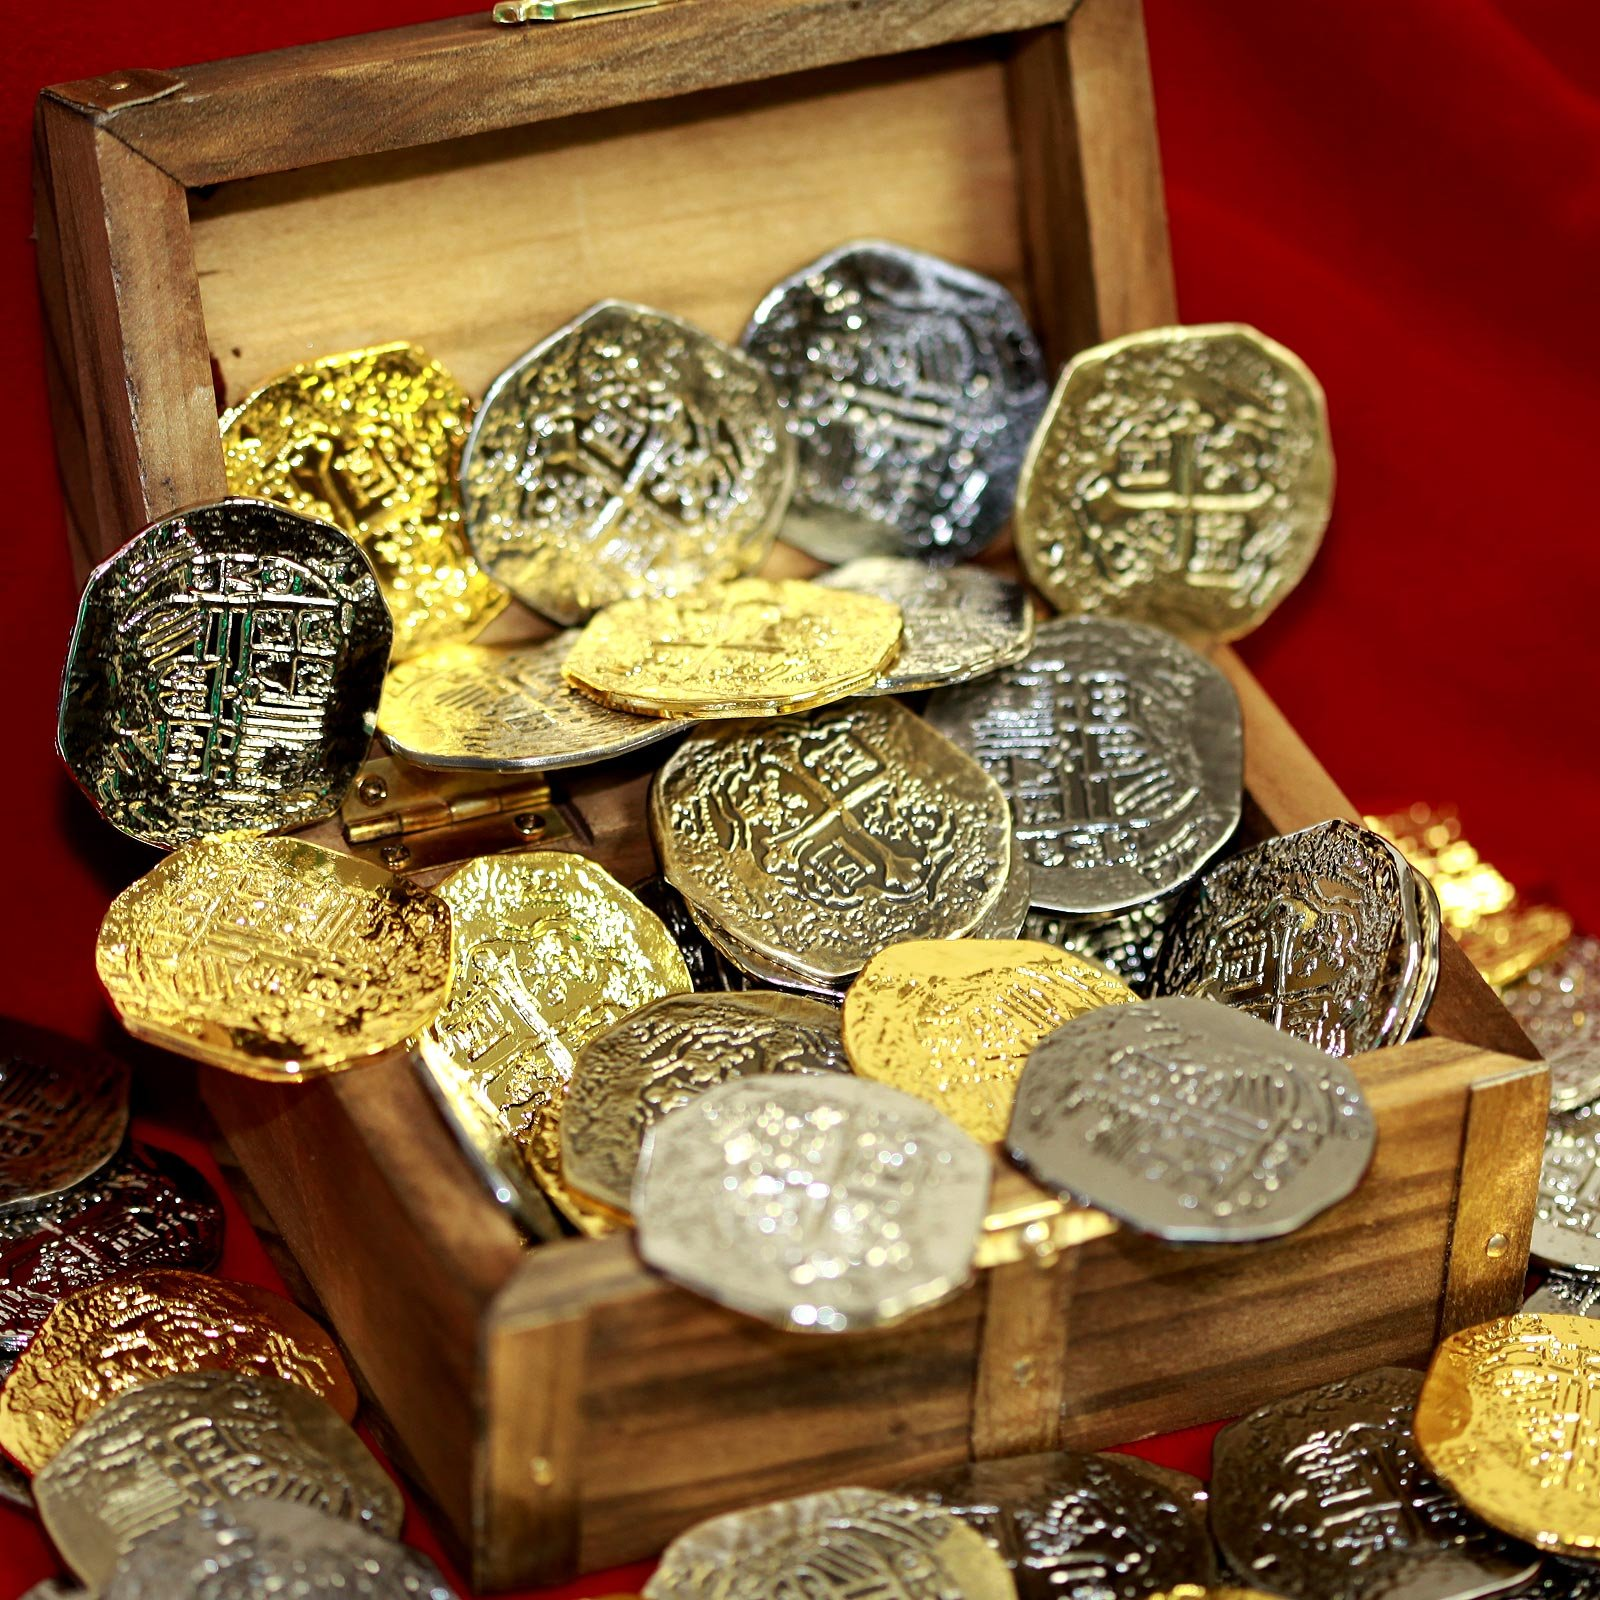 Beverly Oaks Large Metal Pirate Coins and Wood Treasure Chest - 40 Gold and Silver Doubloon Replicas